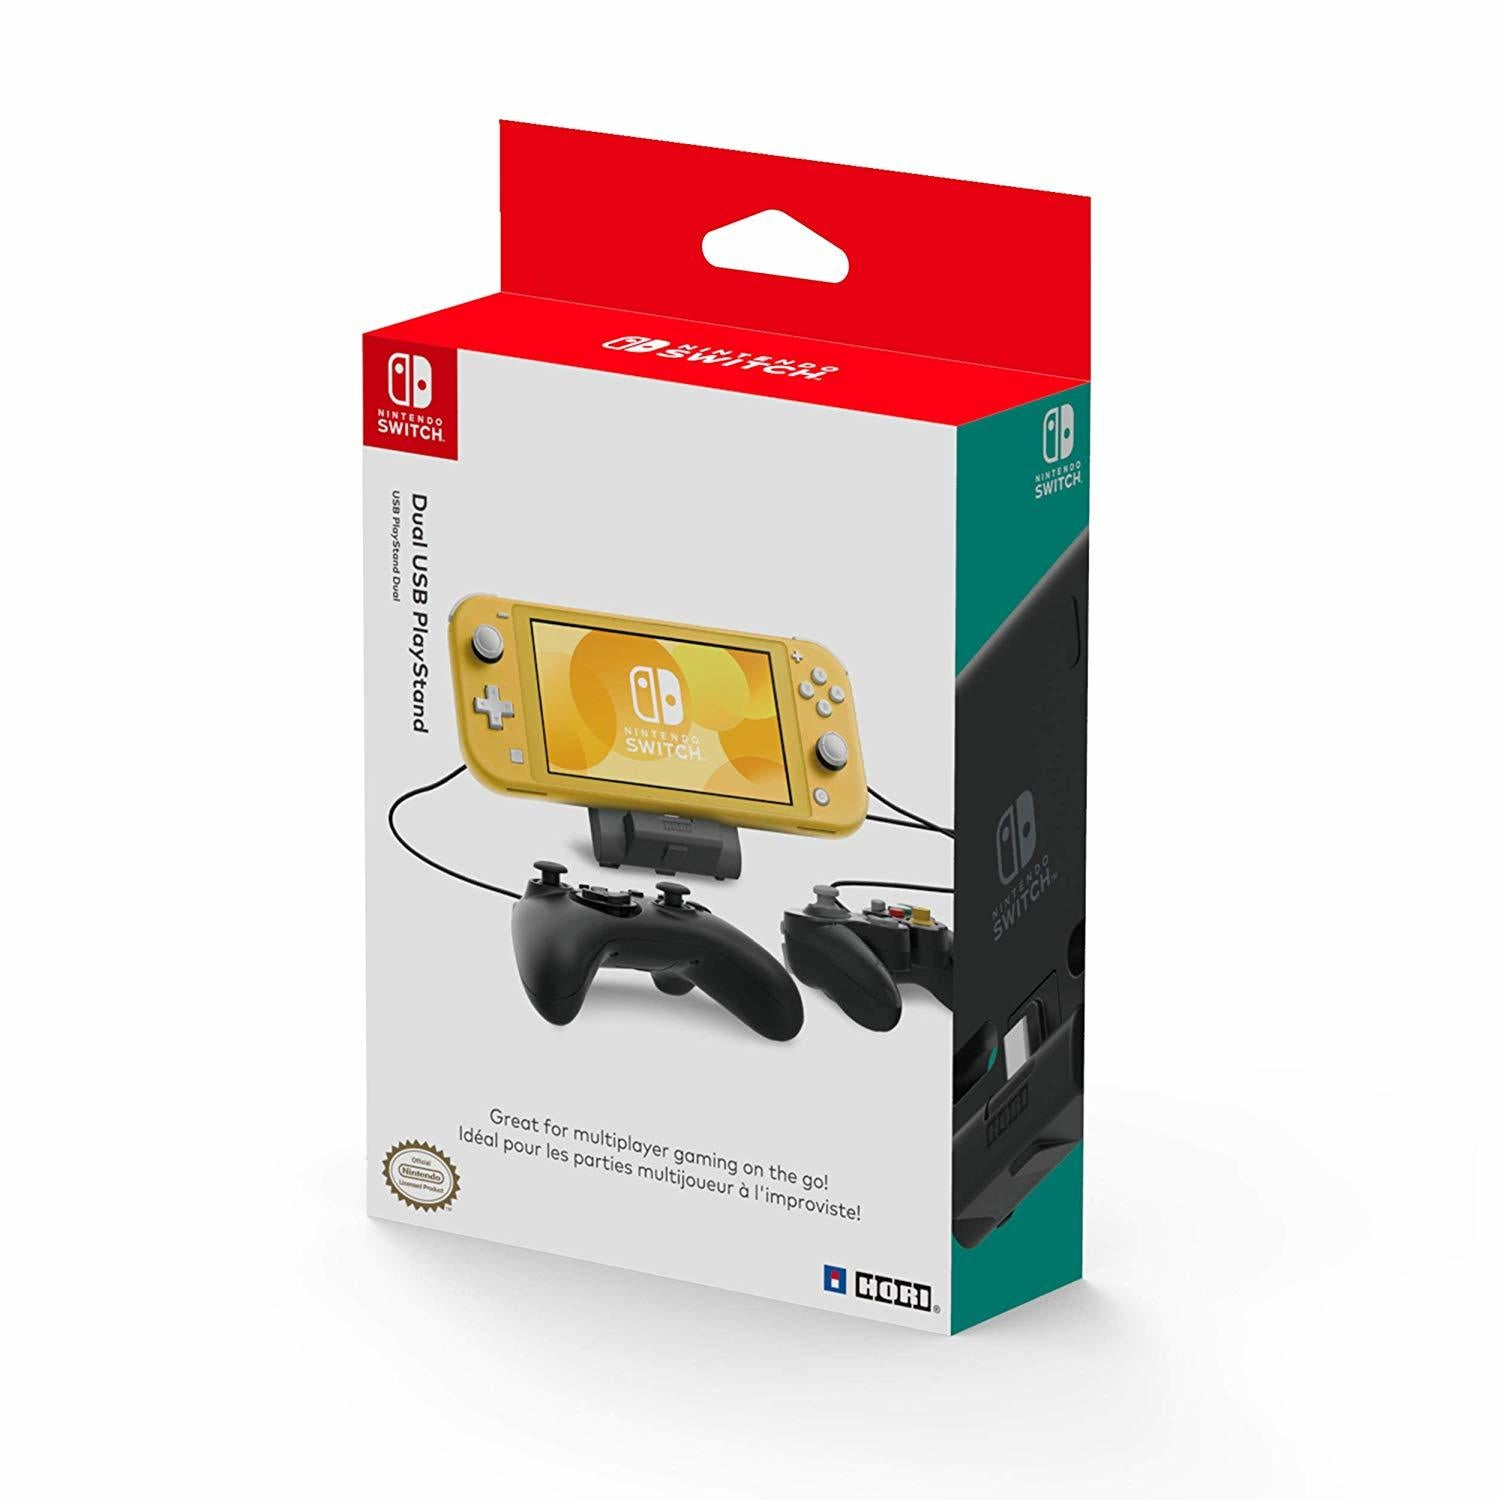 Dual USB Playstand for Nintendo Switch Lite by Hori - Nintendo Switch